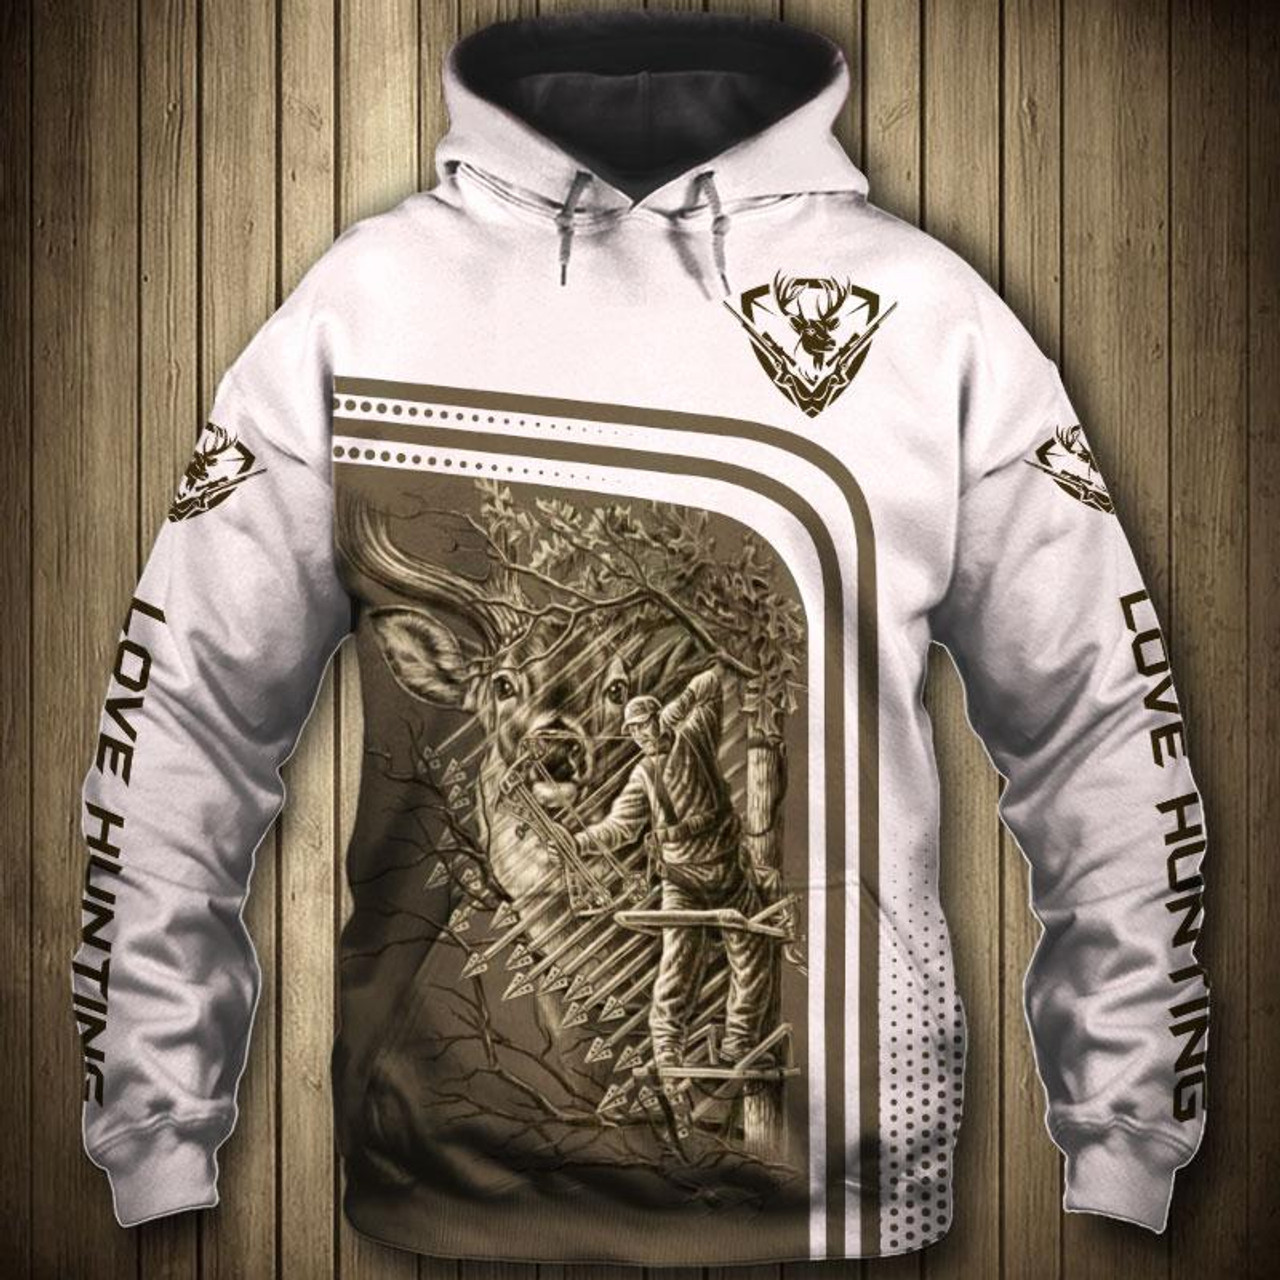 **(OFFICIAL ARCHERY BUCK HUNTING PULLOVER HOODIES3 D CUSTOM DETAILED GRAPHIC PRINTEDDOUBLE SIDED ALL OVER PRINTED DESIGNLOVE HUNTING DOWN SLEEVES &